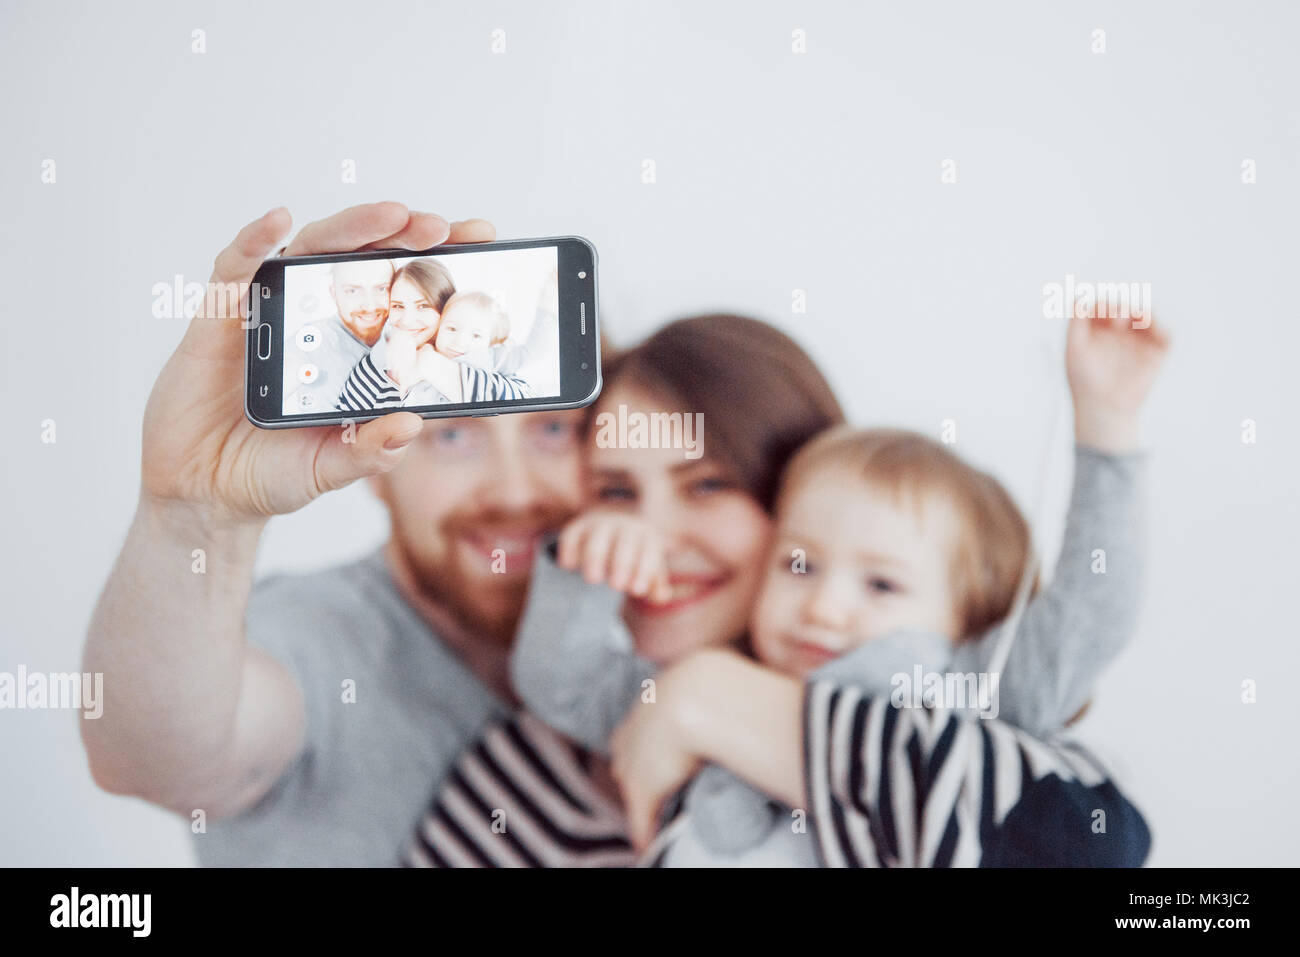 family, holidays, technology and people - smiling mother, father and little girl making selfie with camera over white background - Stock Image